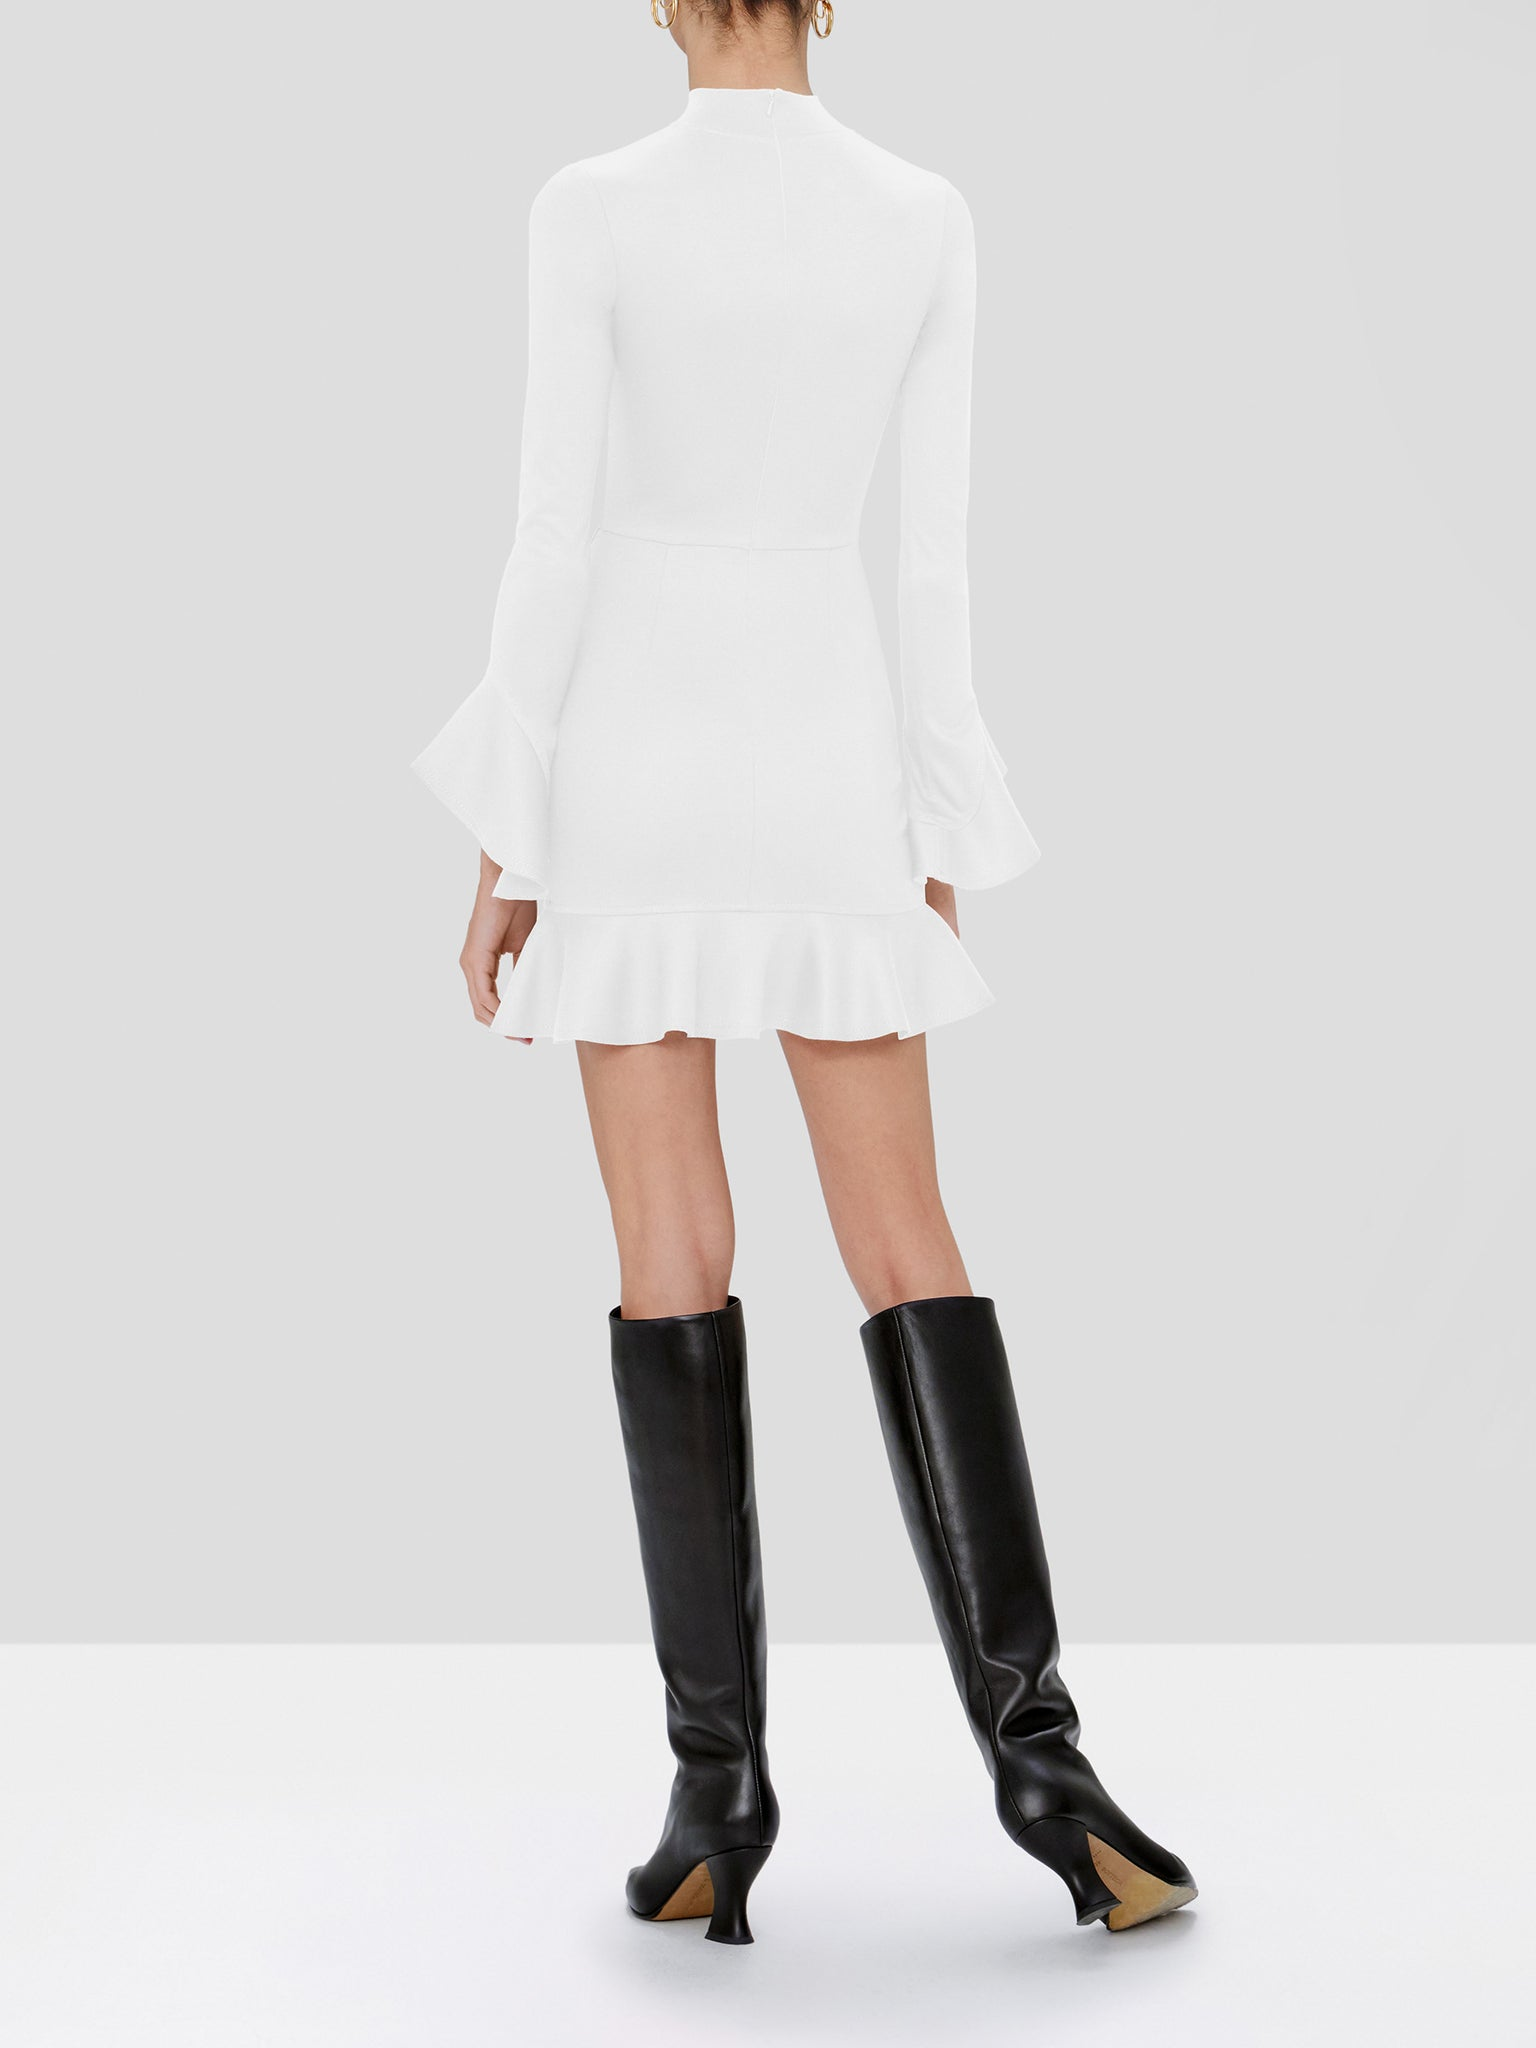 eladia dress in white - Rear View